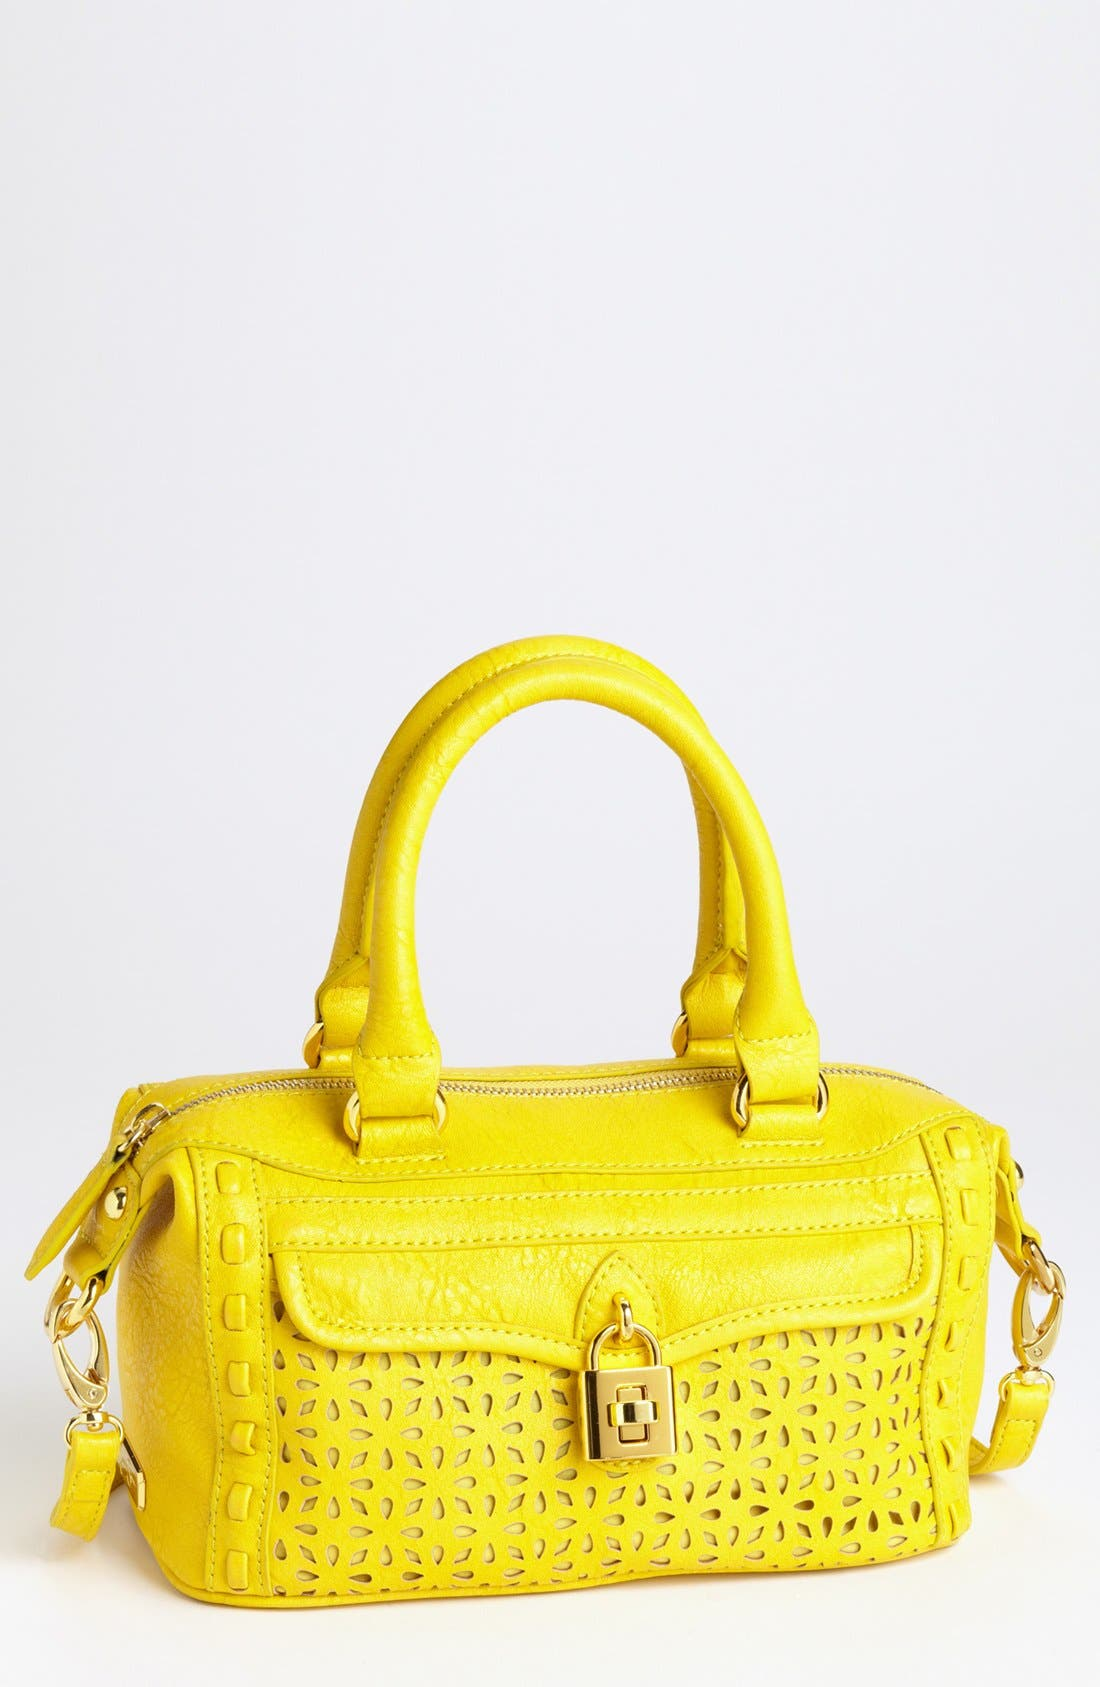 Main Image - Jessica Simpson 'Madison - Mini' Faux Leather Satchel